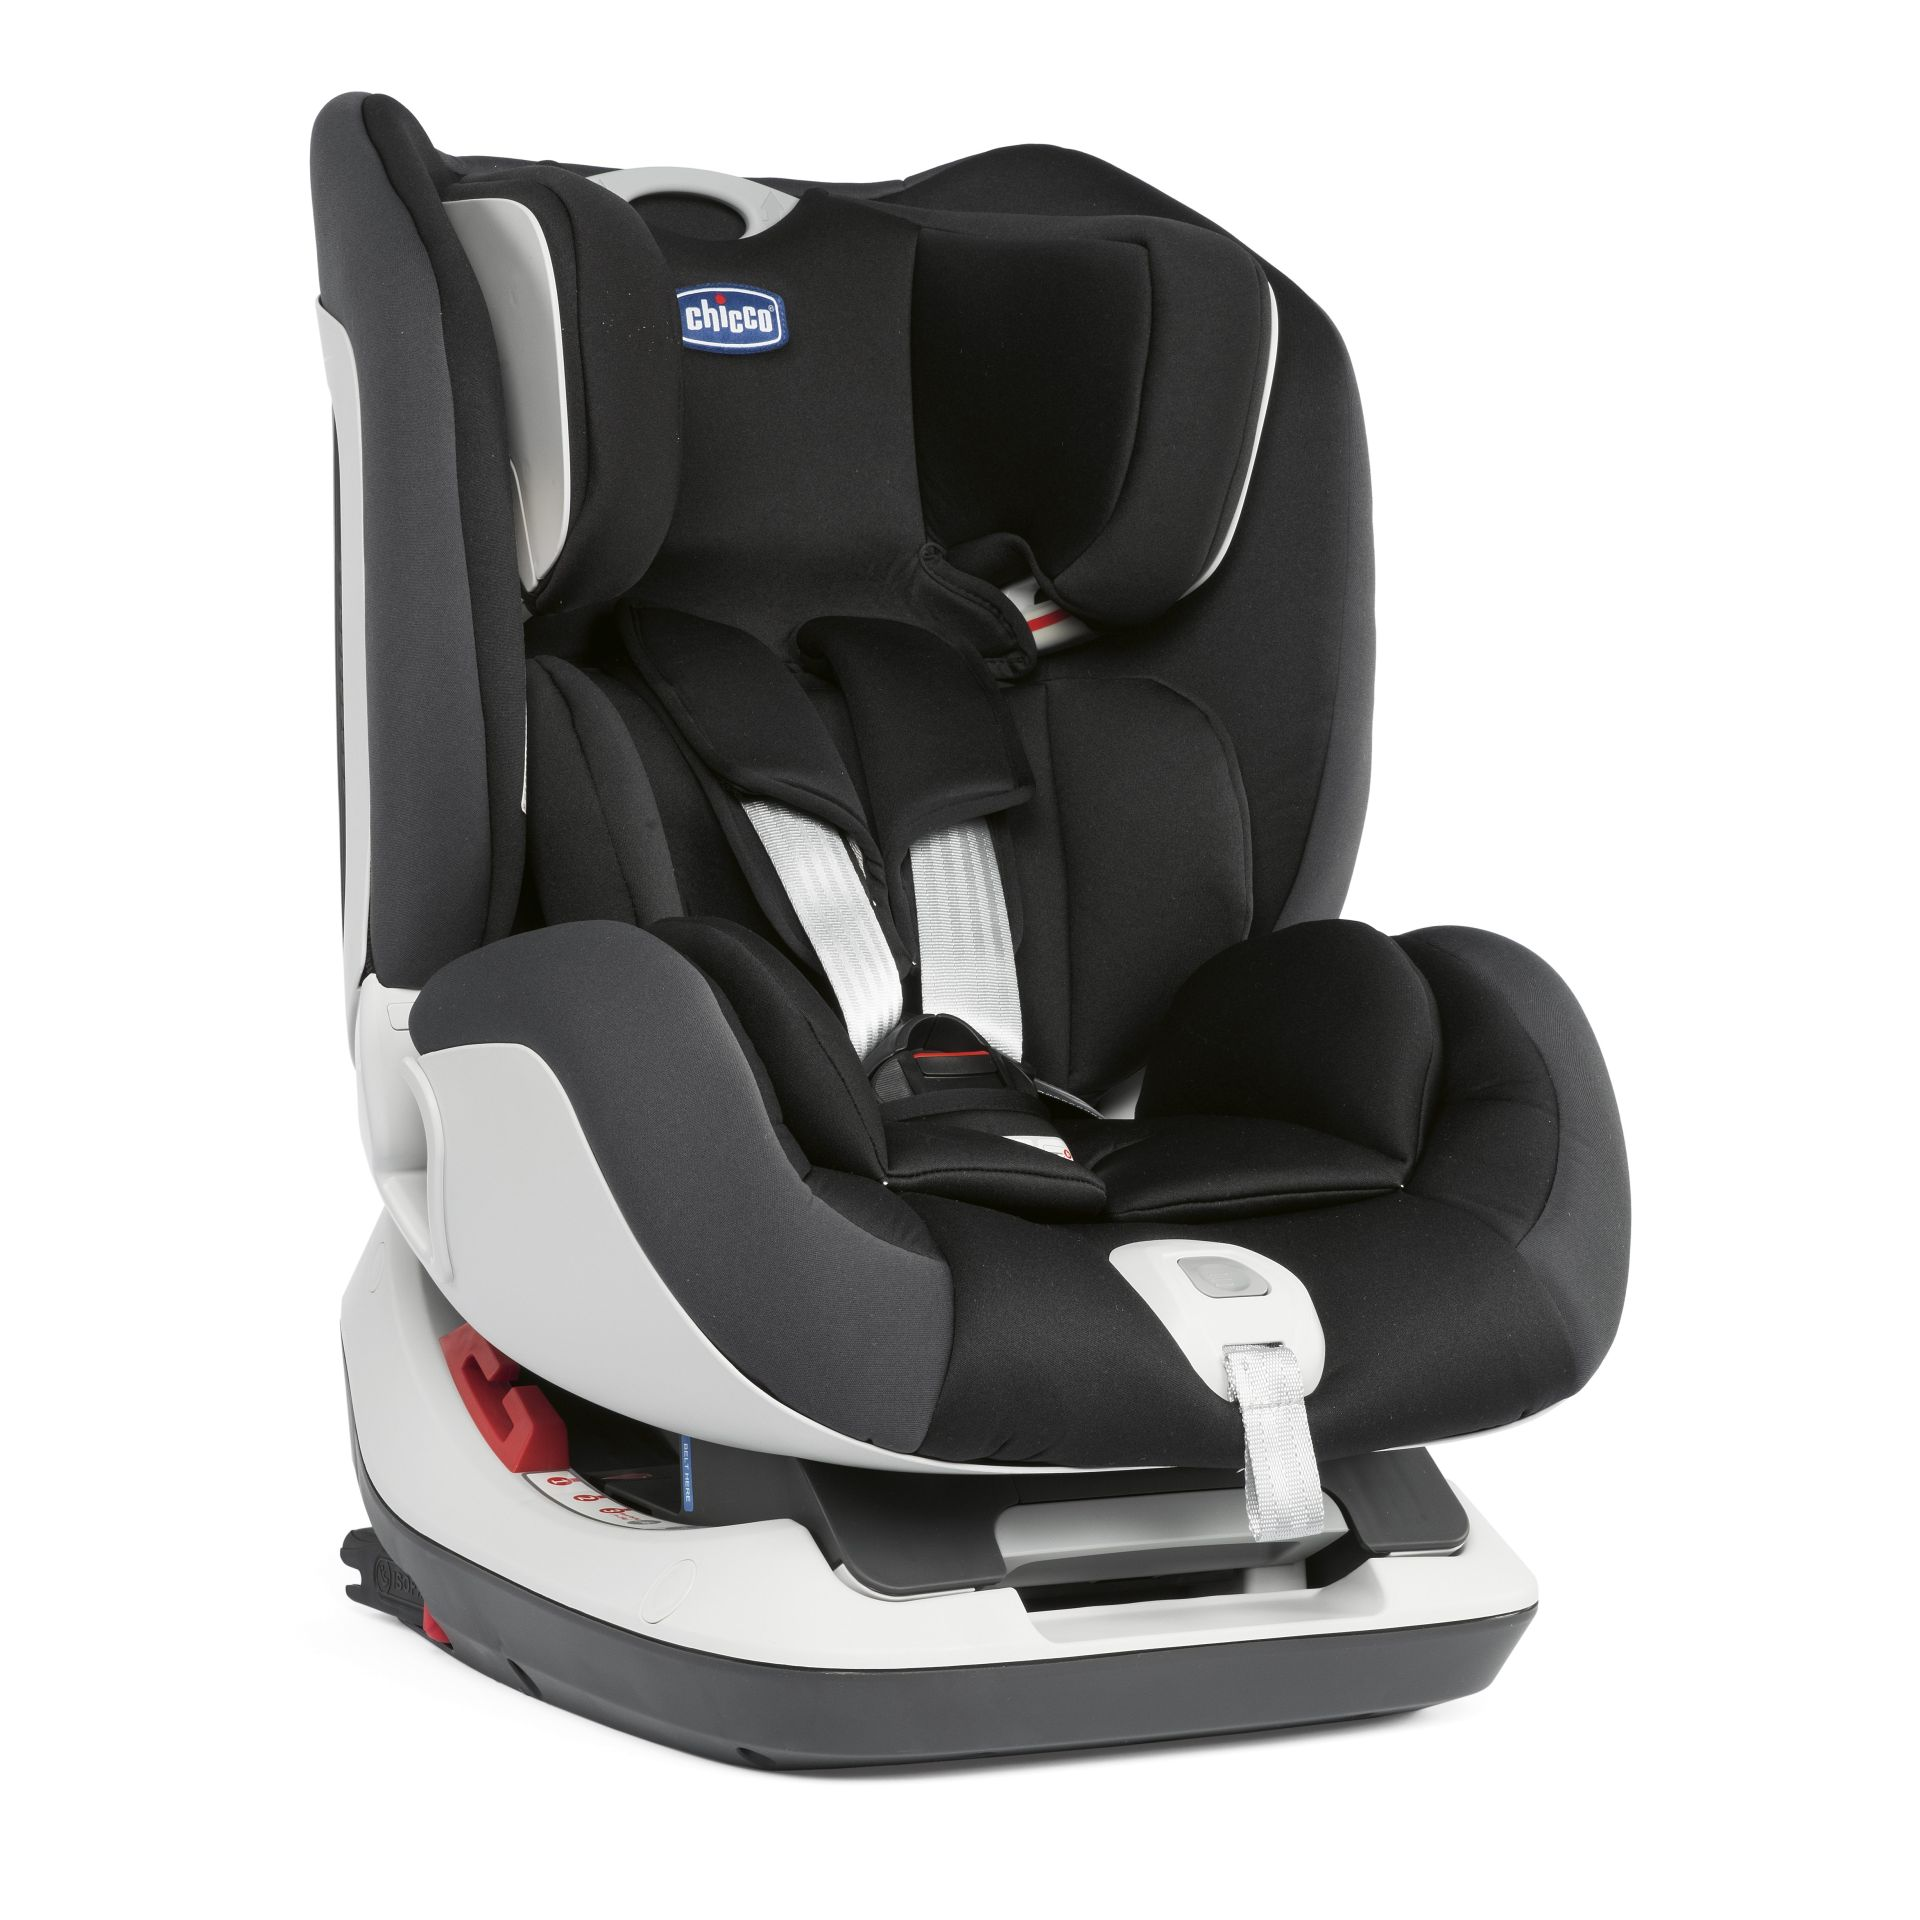 chicco car seat seat up 0 1 2 2018 jet black buy at kidsroom car seats. Black Bedroom Furniture Sets. Home Design Ideas